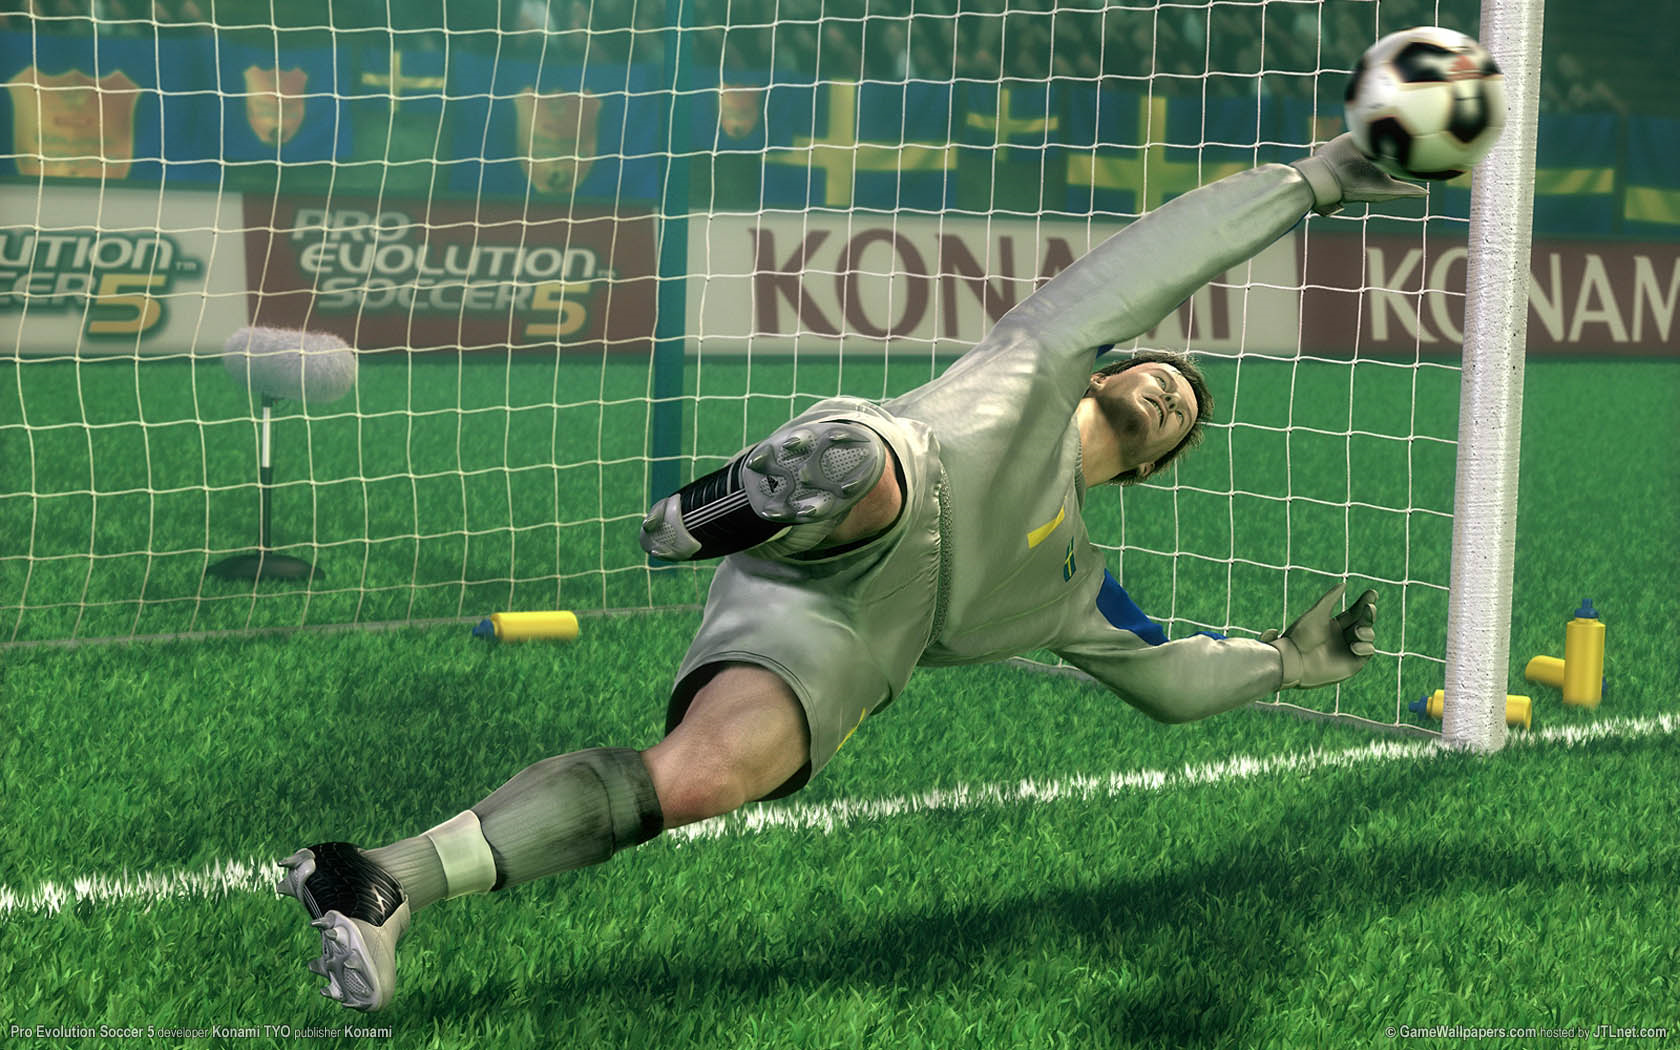 Pro Evolution Soccer 5 Mods, Maps, Patches & News - GameFront